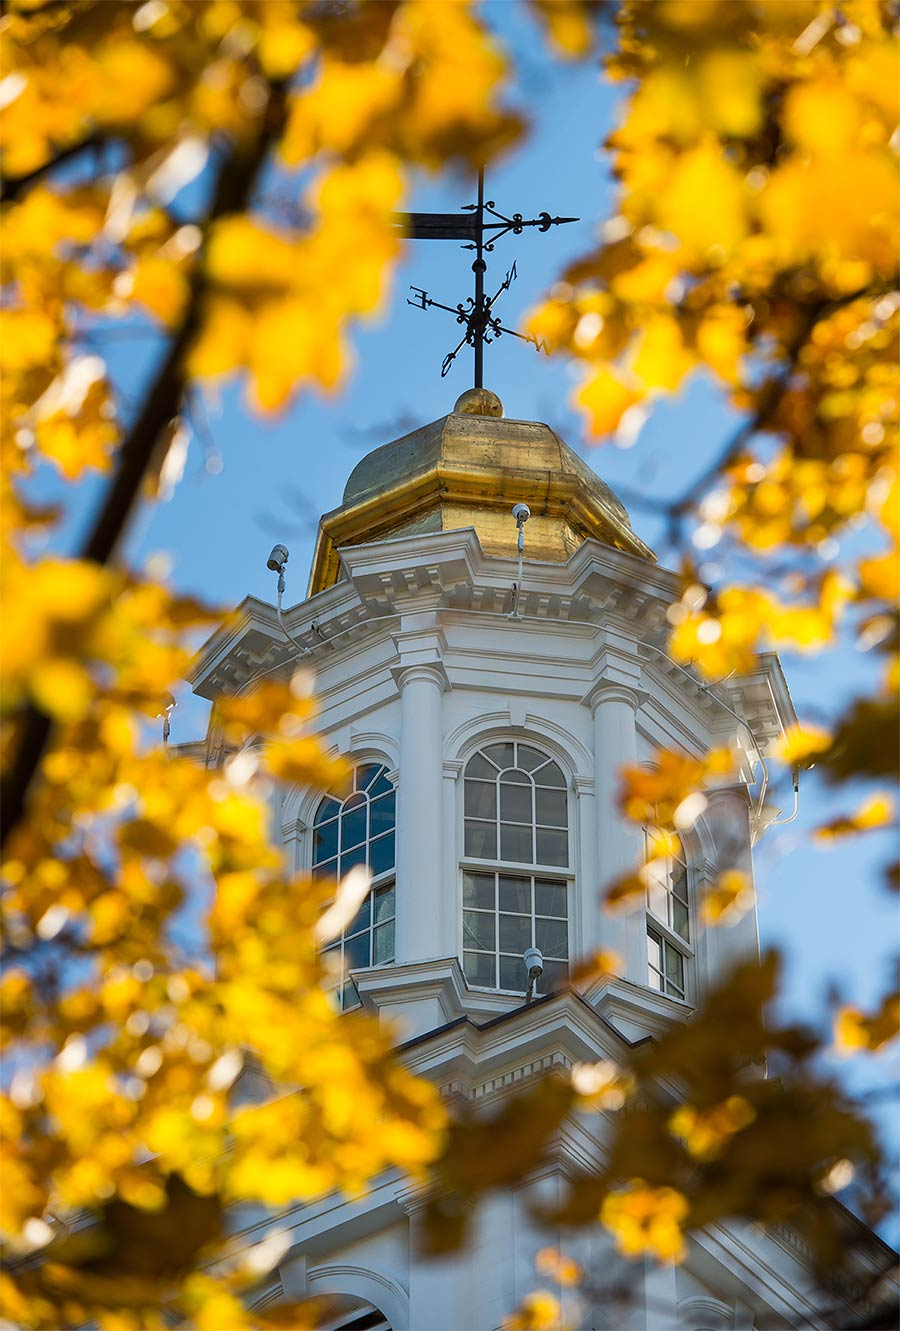 The Colgate Memorial Chapel cupola viewed through the fall foliage